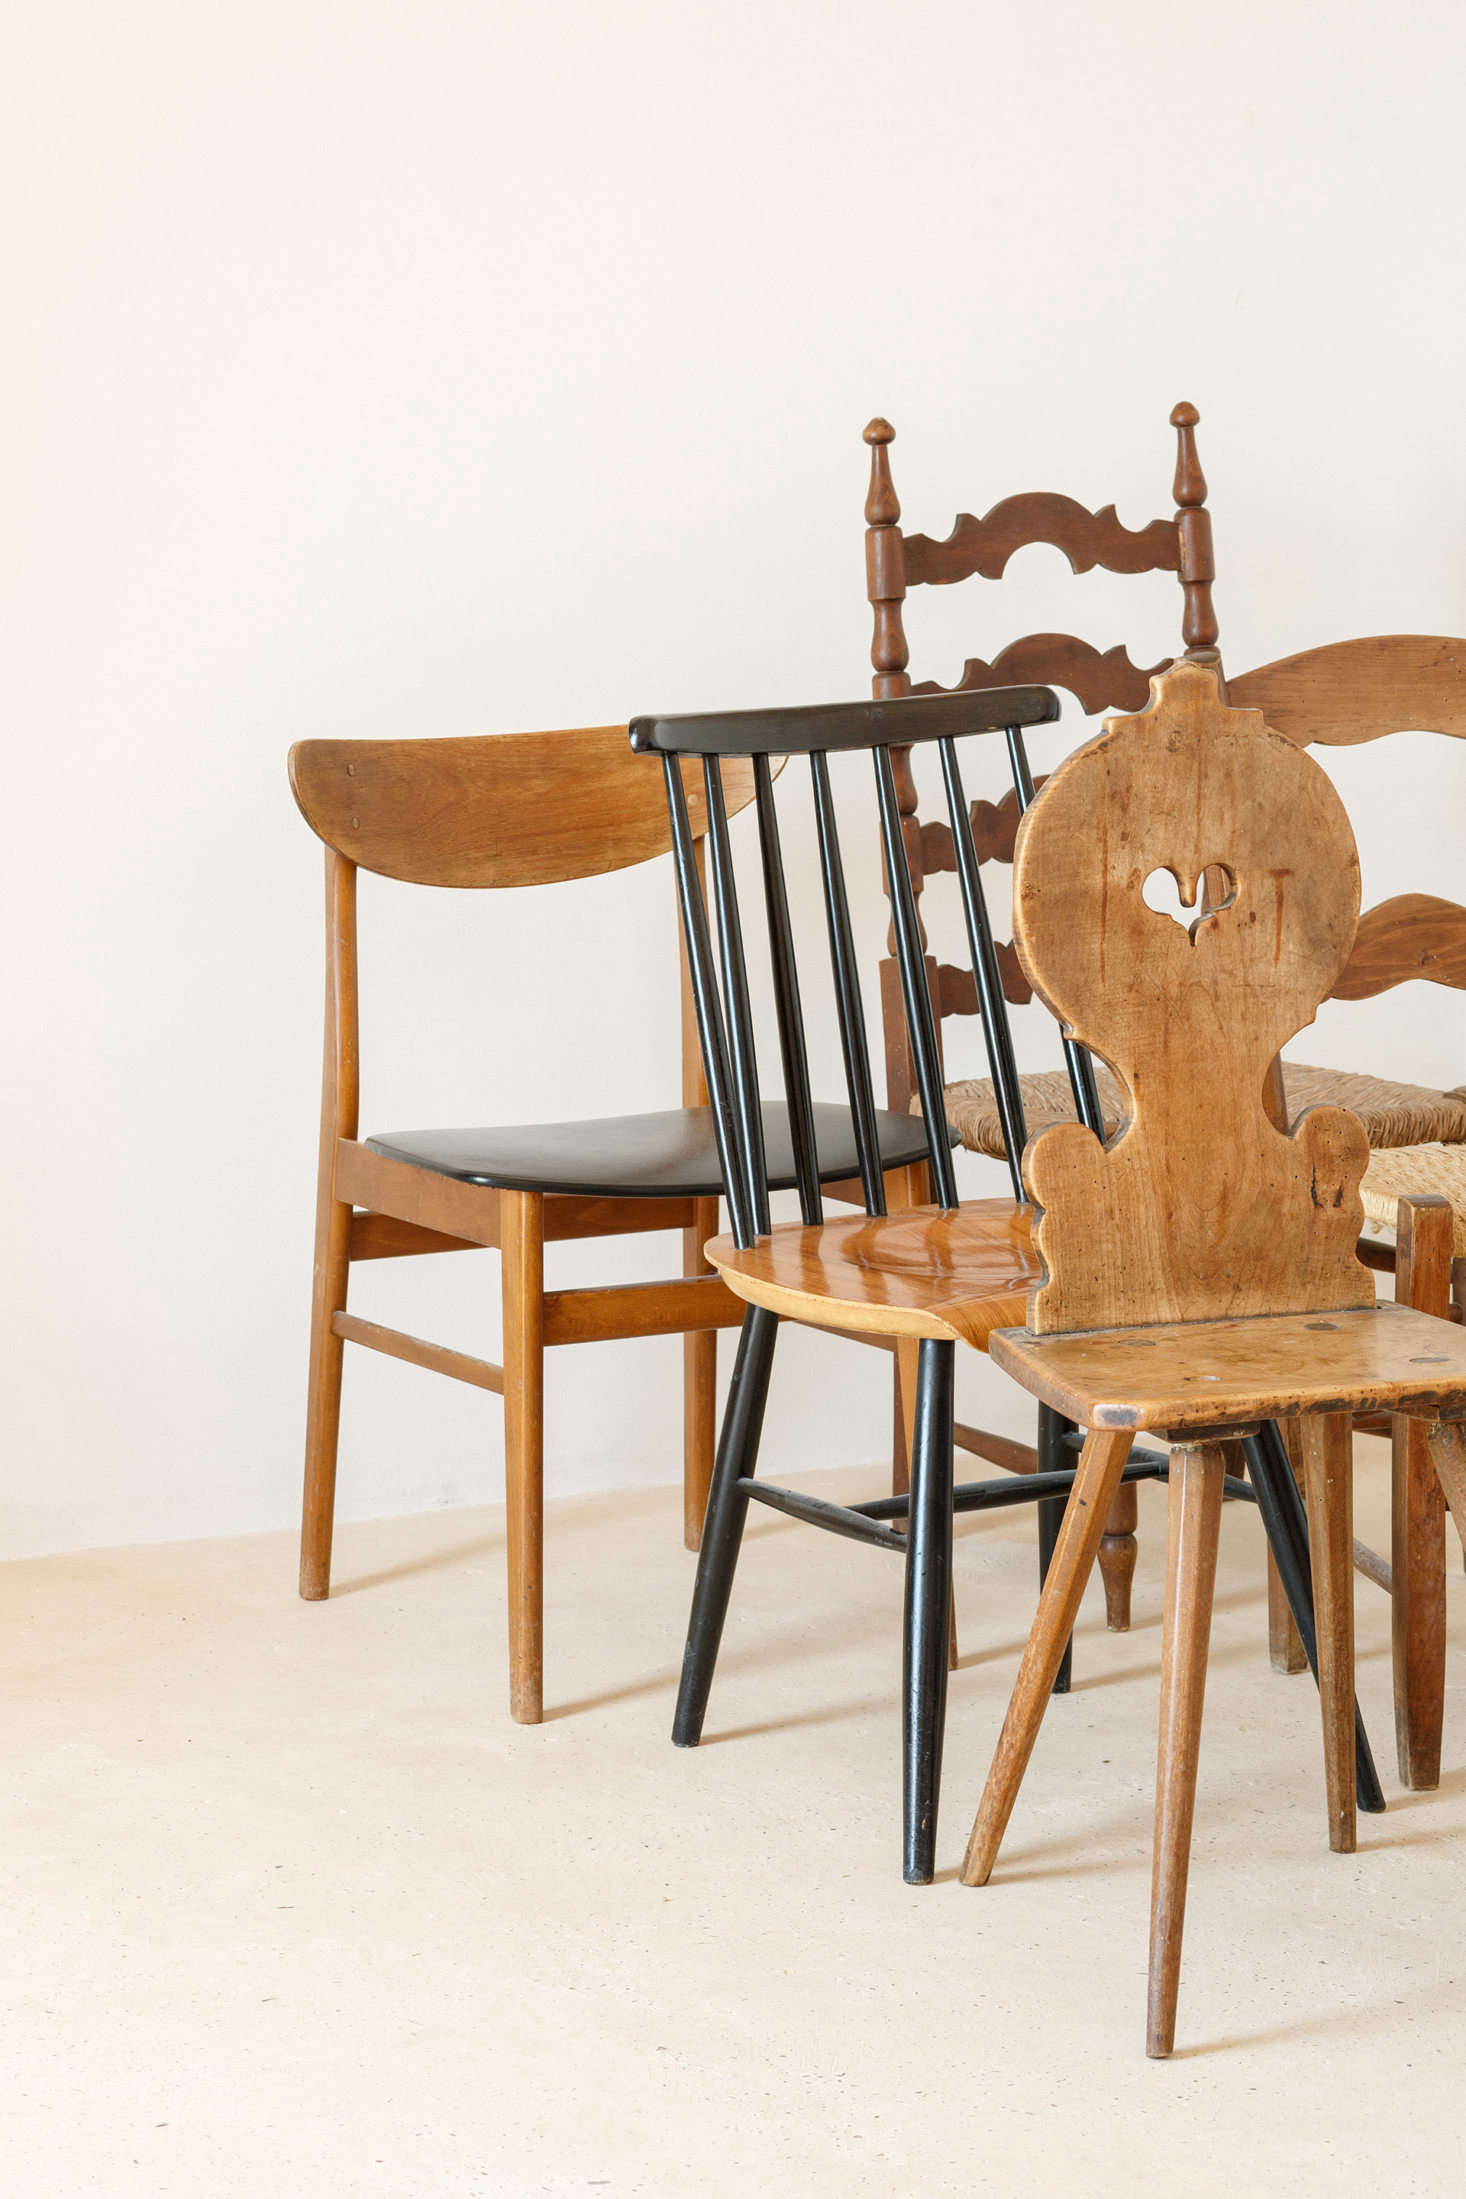 """The chairs throughout the house are a mix of styles: """"some existing Mallorcan-style chairs that were in the house (luckily the previous owners kept all existing furniture), some Scandinavian chairs bought in Basel and in flea markets in Paris and Belfort, an Eames Vitra Wire Chair from Basel, and a traditional Swiss wooden chair, bought in a brocki (a secondhand shop, typical in Switzerland),"""" the architects say."""